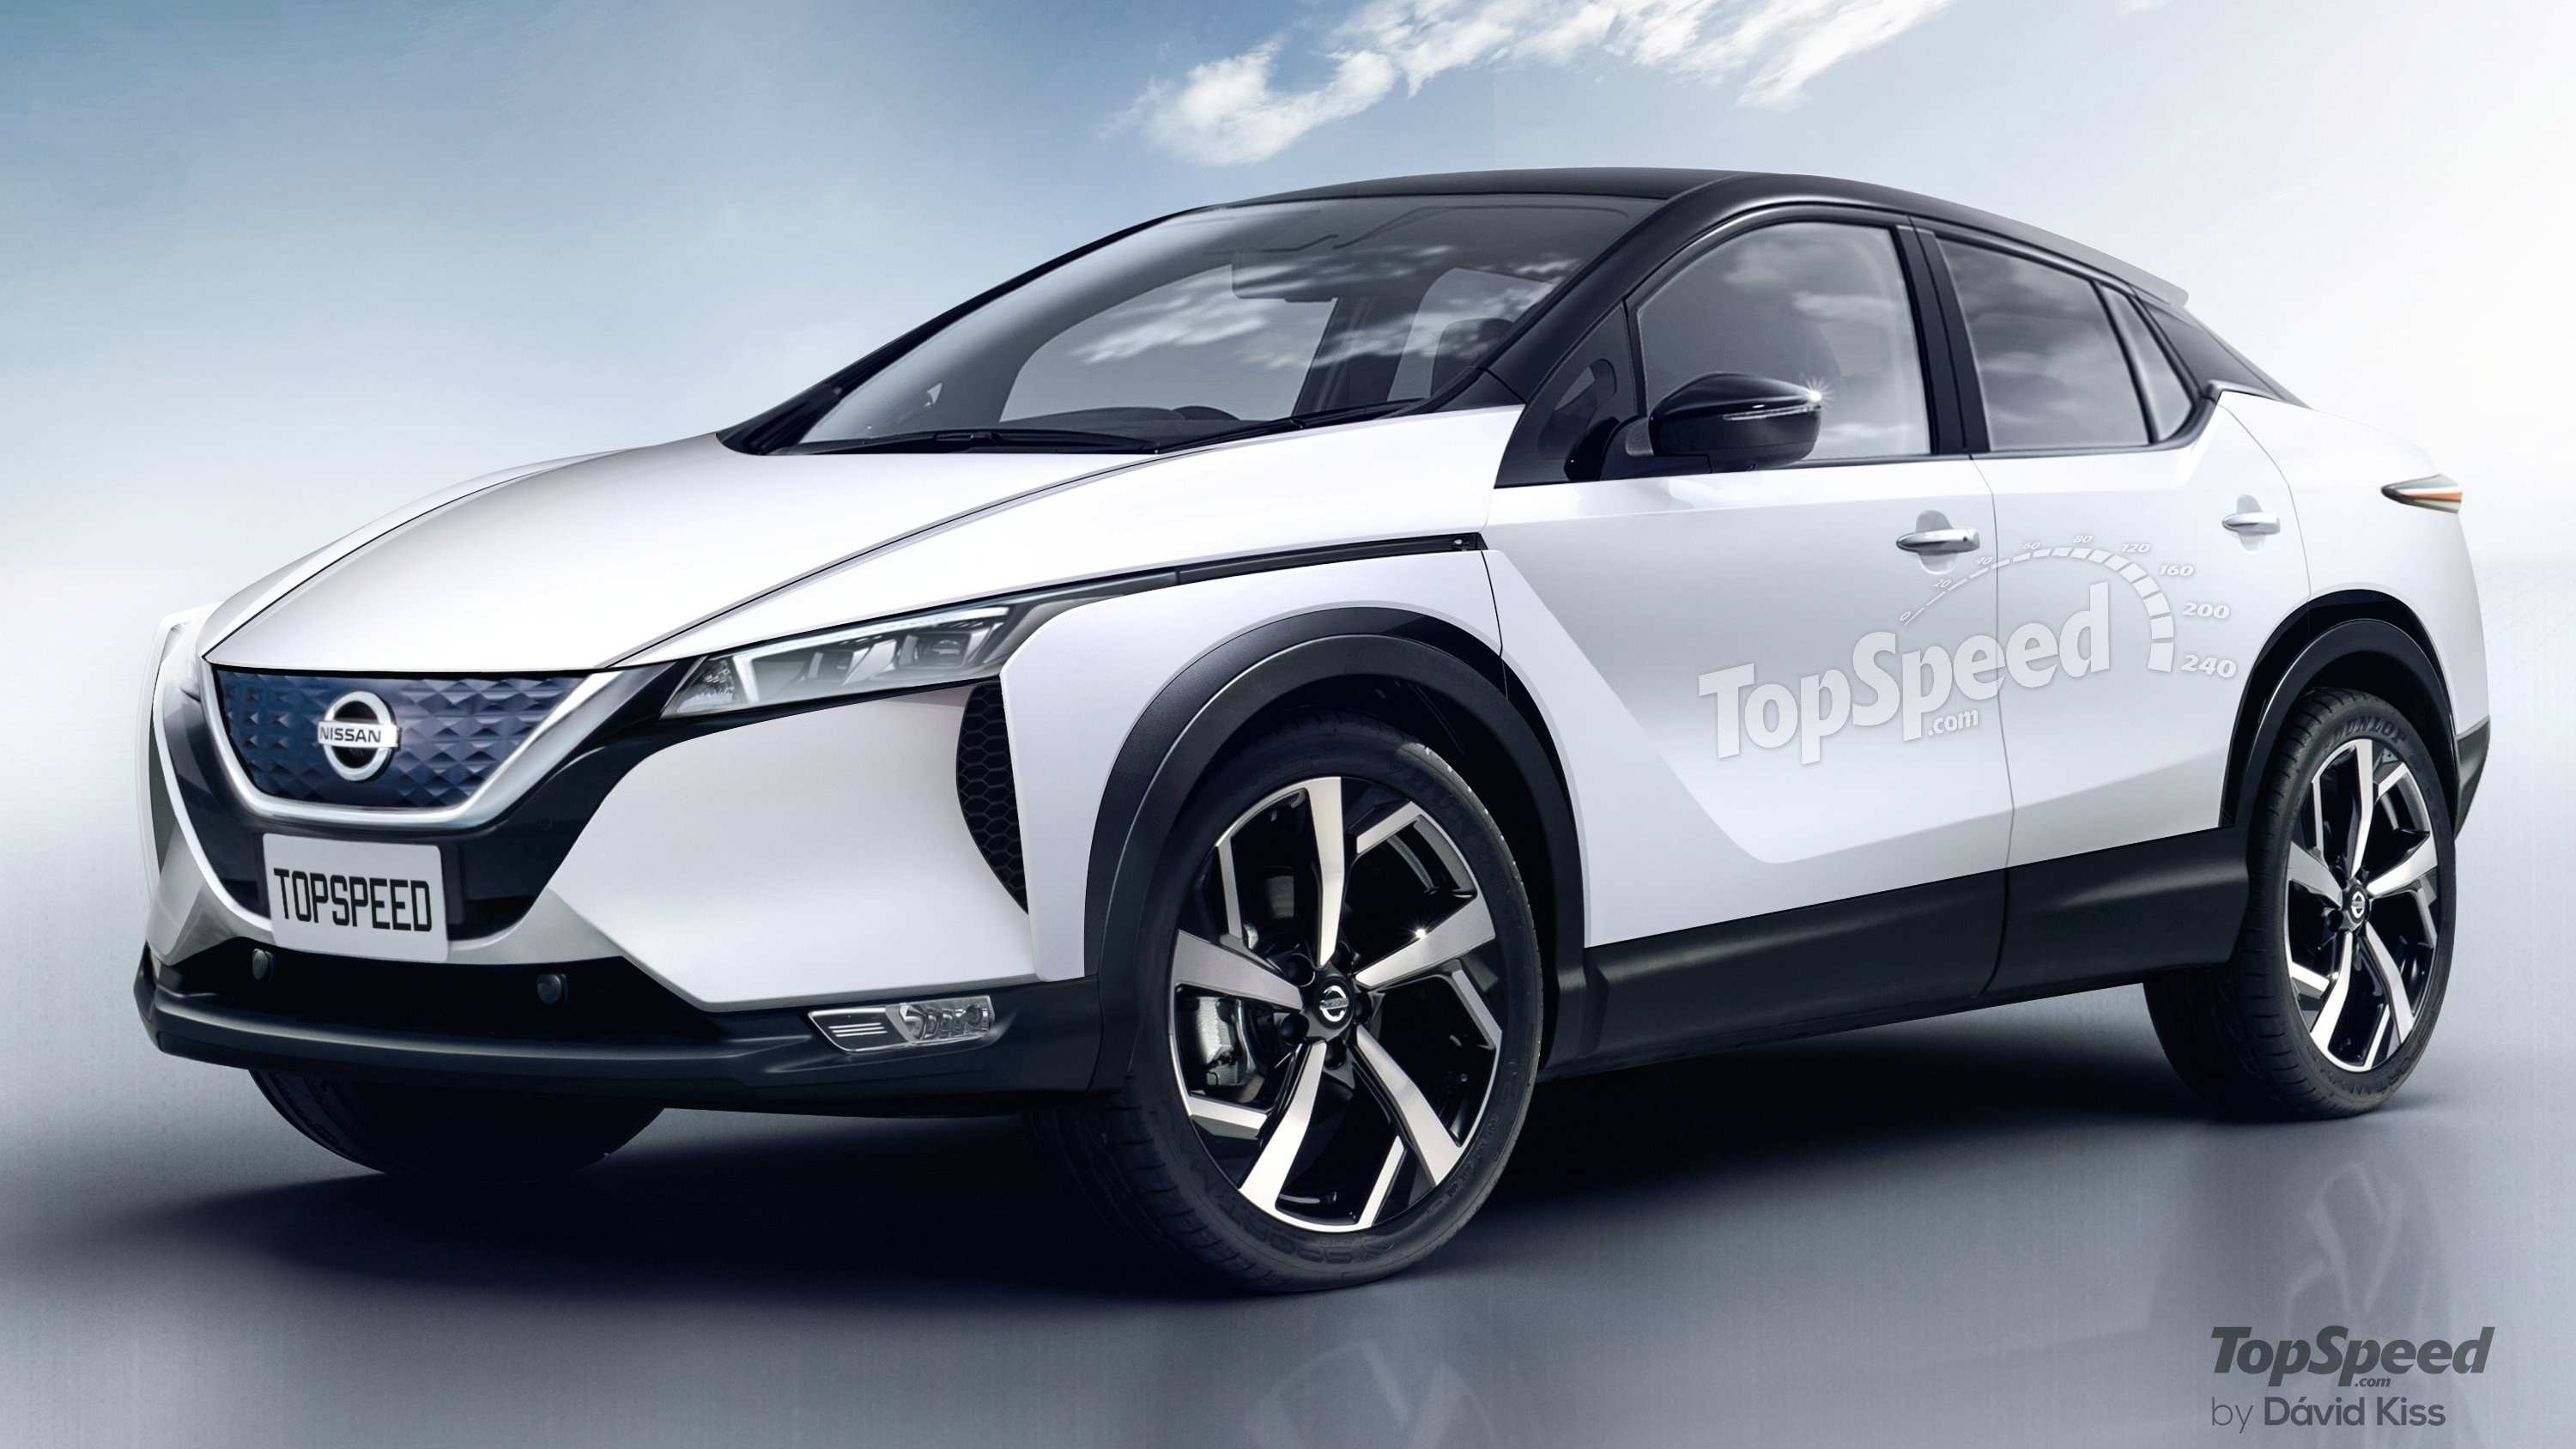 26 Gallery of Nissan Qashqai 2020 Release Date Photos by Nissan Qashqai 2020 Release Date